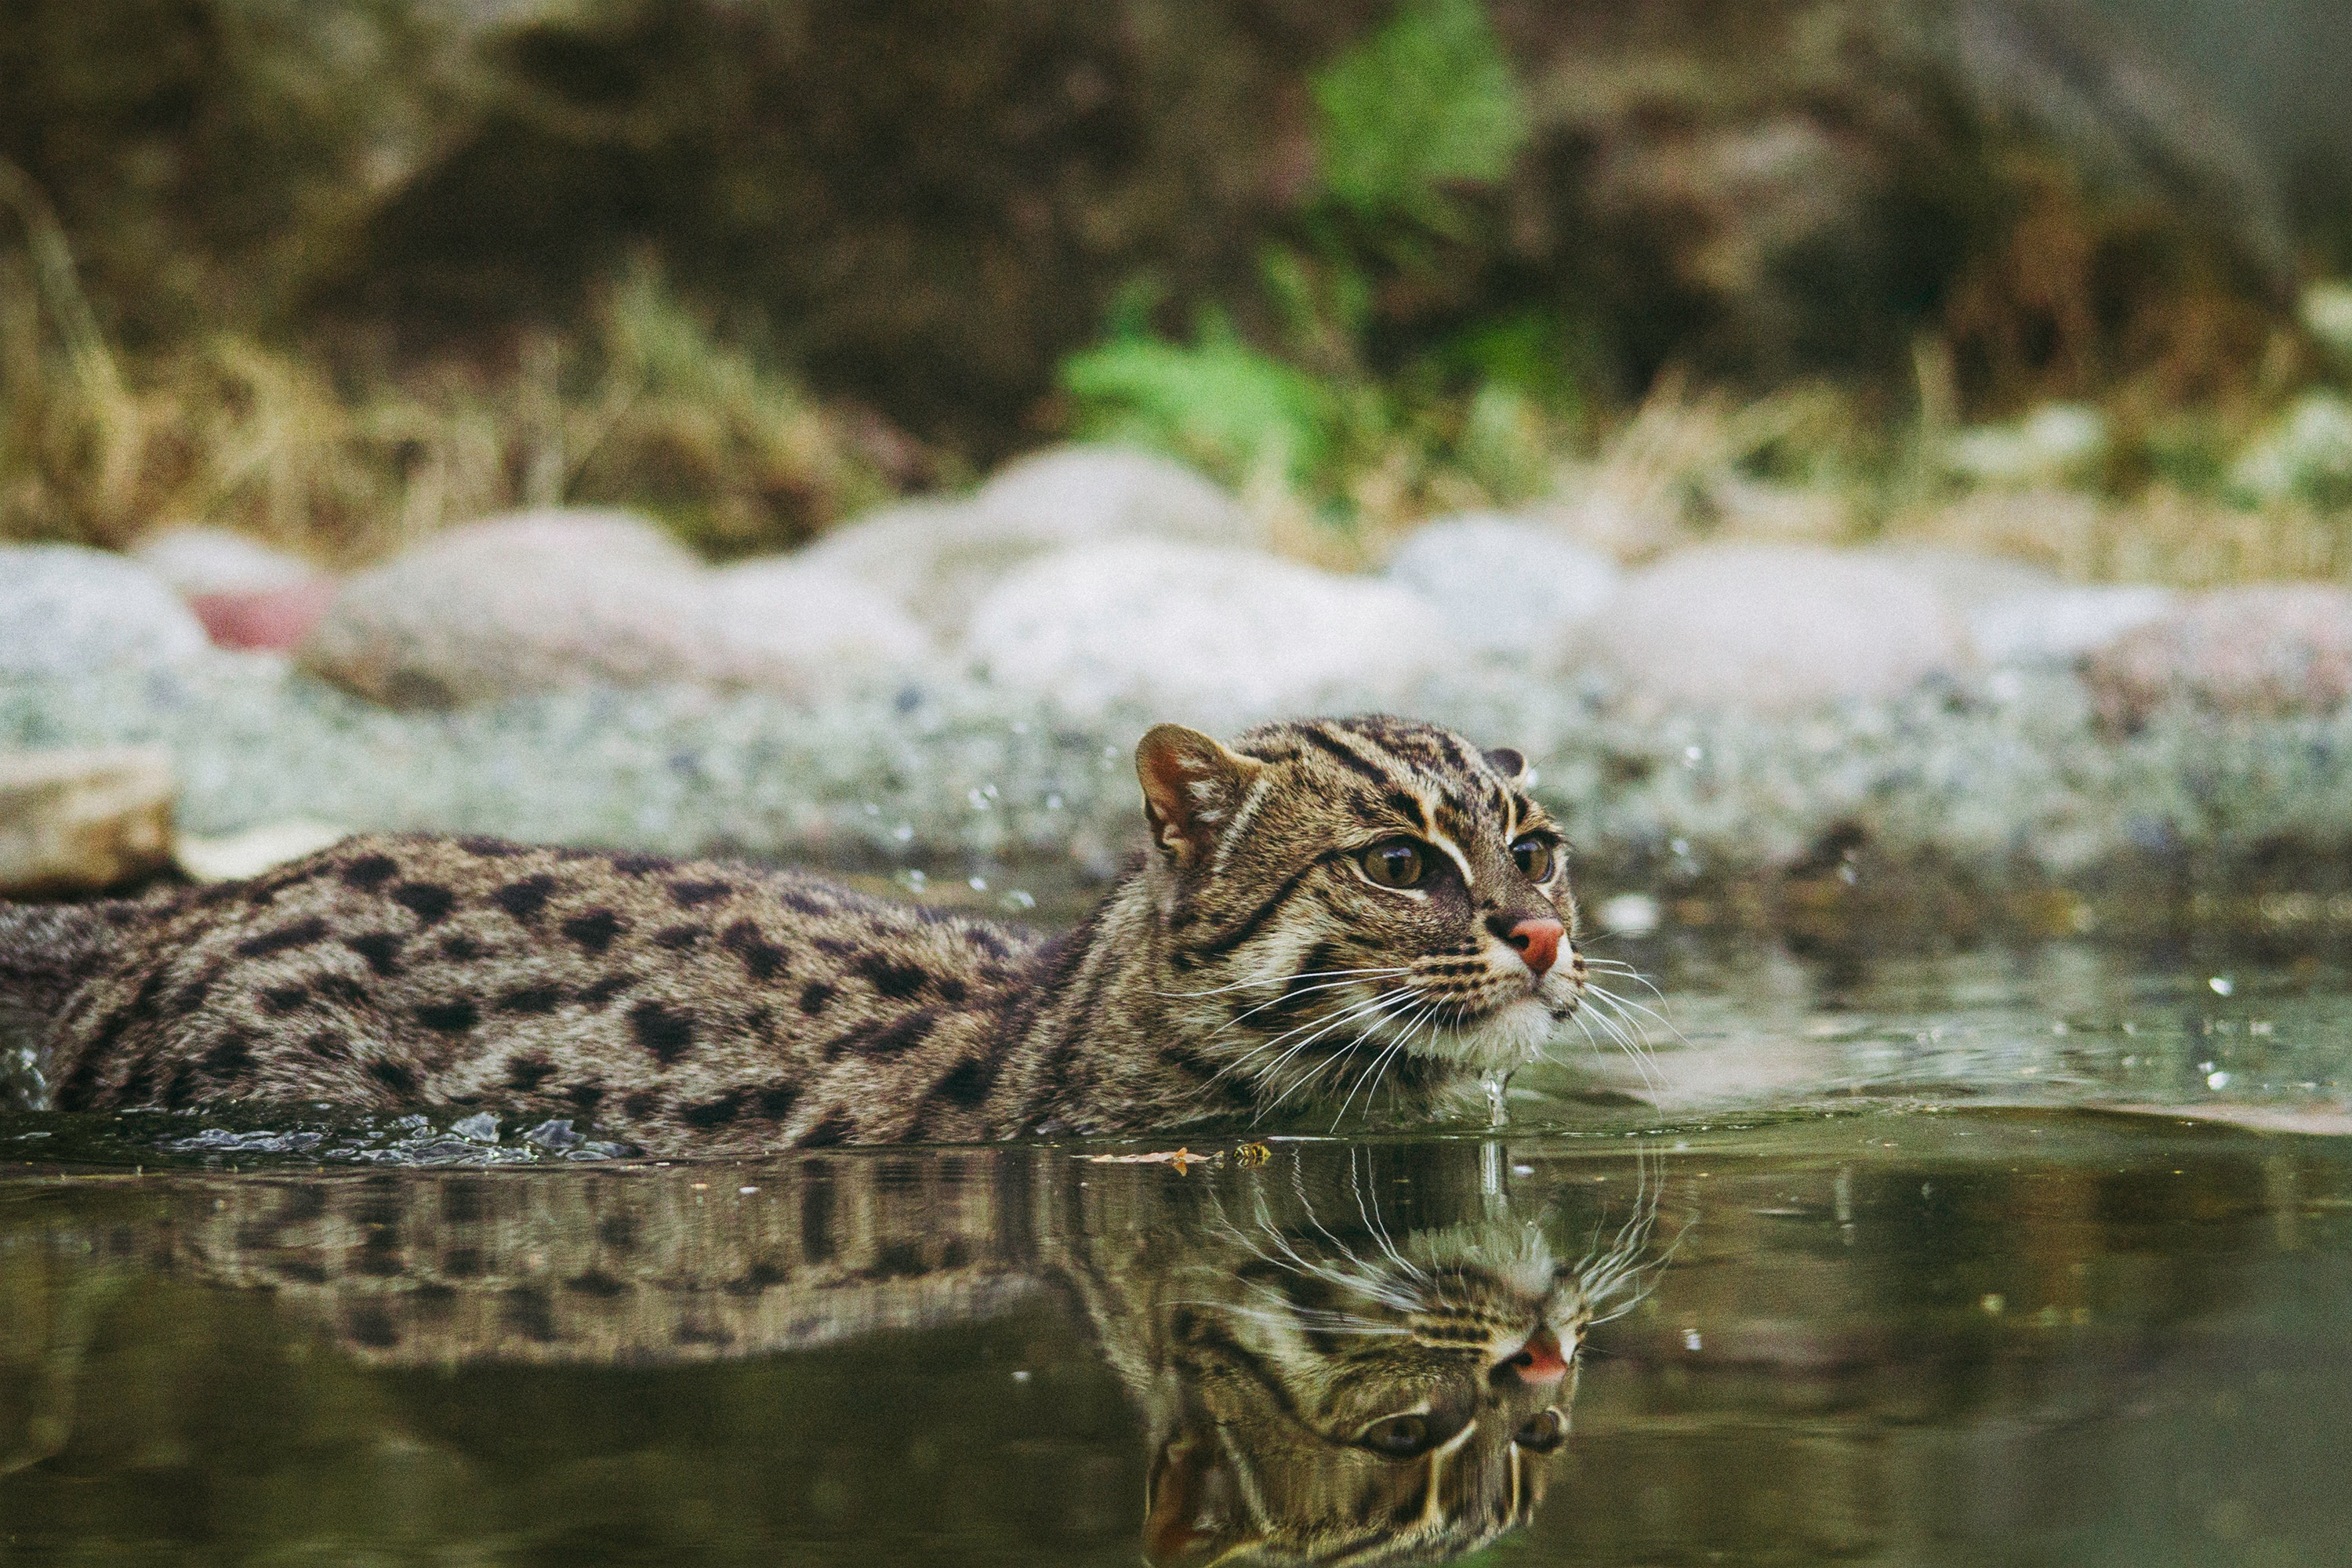 126157 download wallpaper Animals, Fishing Cat, Fish Cat, Mottled Cat, Ratchet Cat, Water, To Swim, Swim screensavers and pictures for free